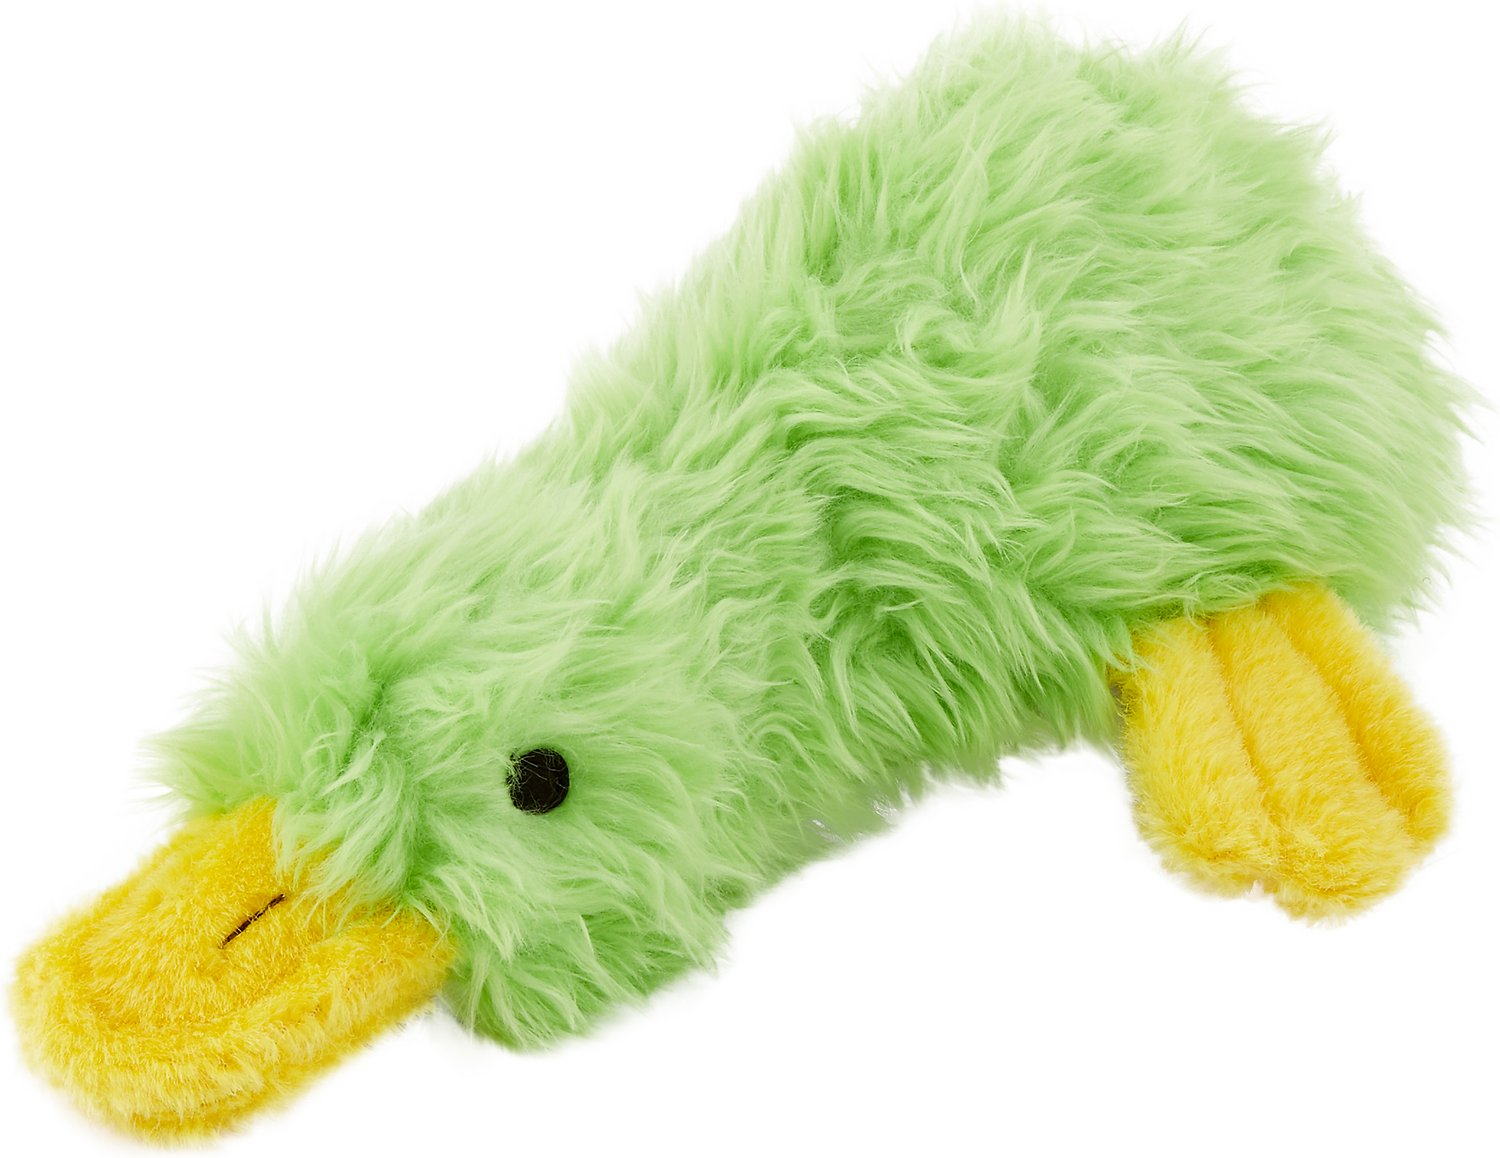 Puppy Toys For 10 And Up : Multipet duckworth webster plush filled dog toy color